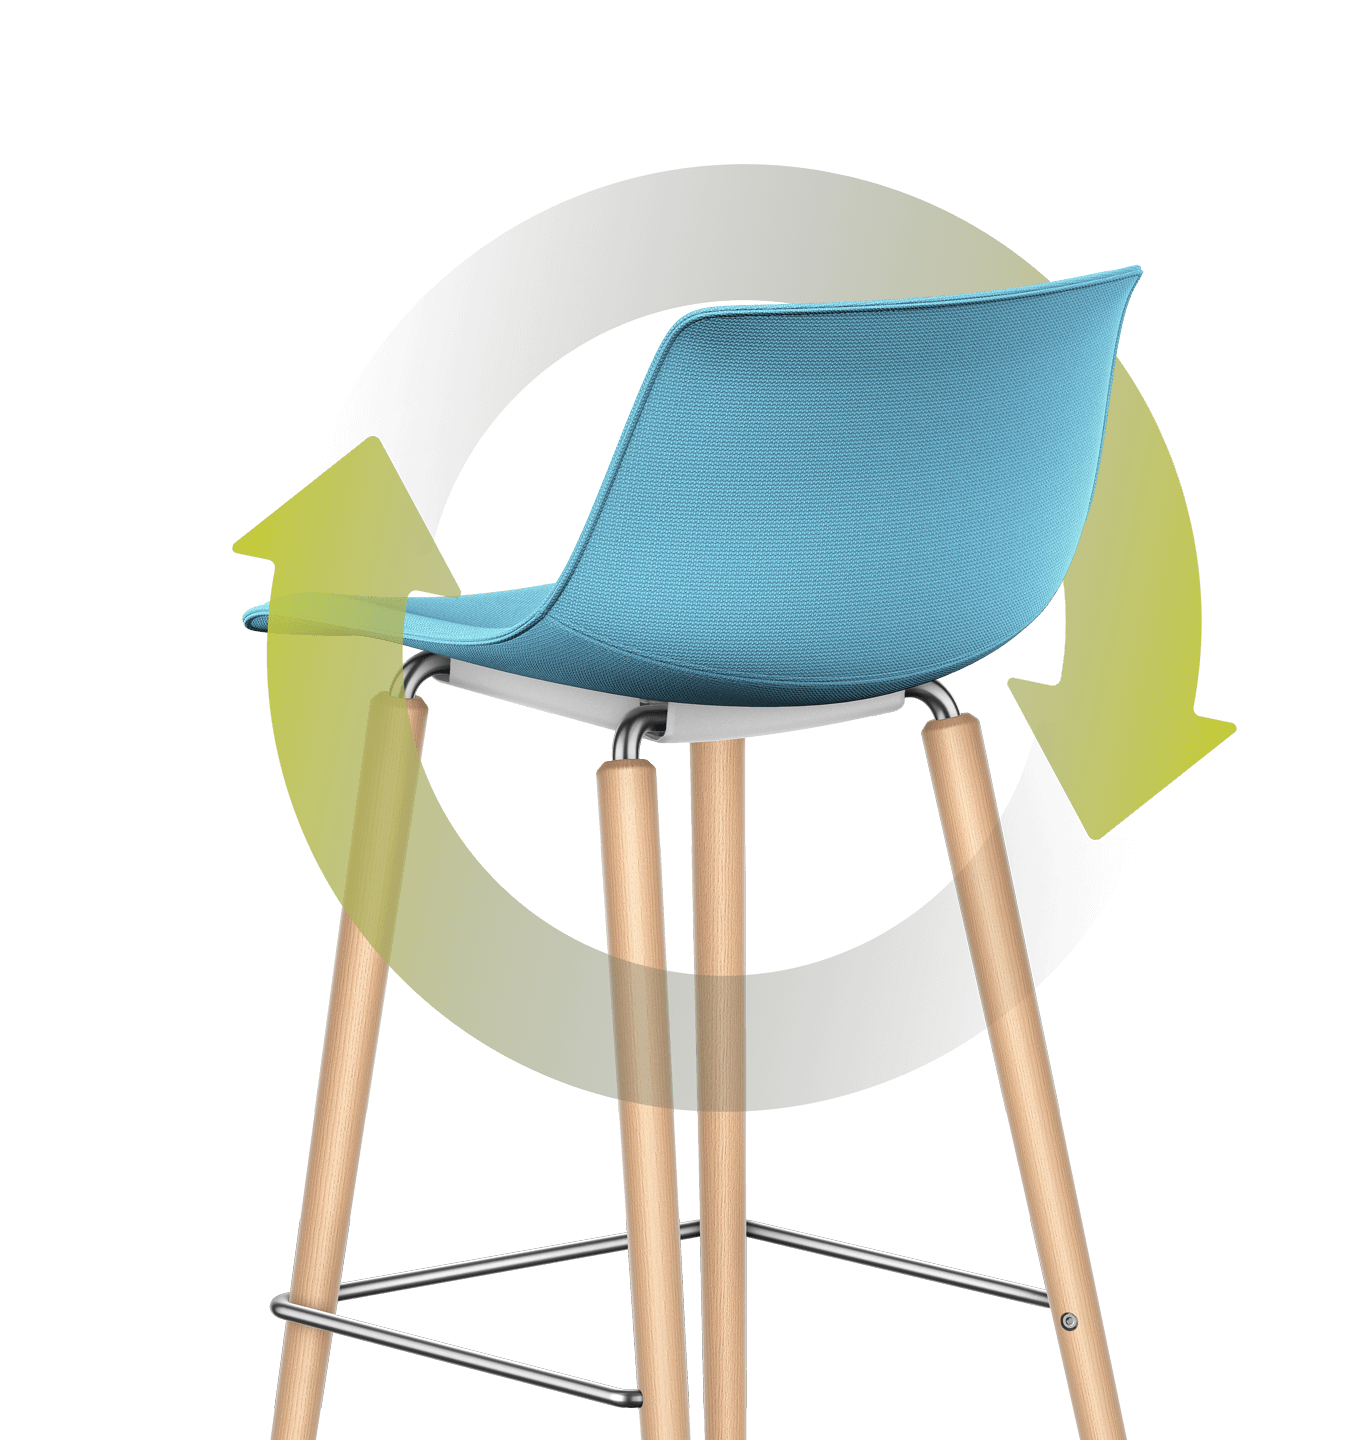 An illustration of green leaves loops around the bar chair with a padded seat and backrest and four-legged wooden base frame. The stem loops around the chair in a circular motion, with the leaves leaning against the rear of the padded backrest.